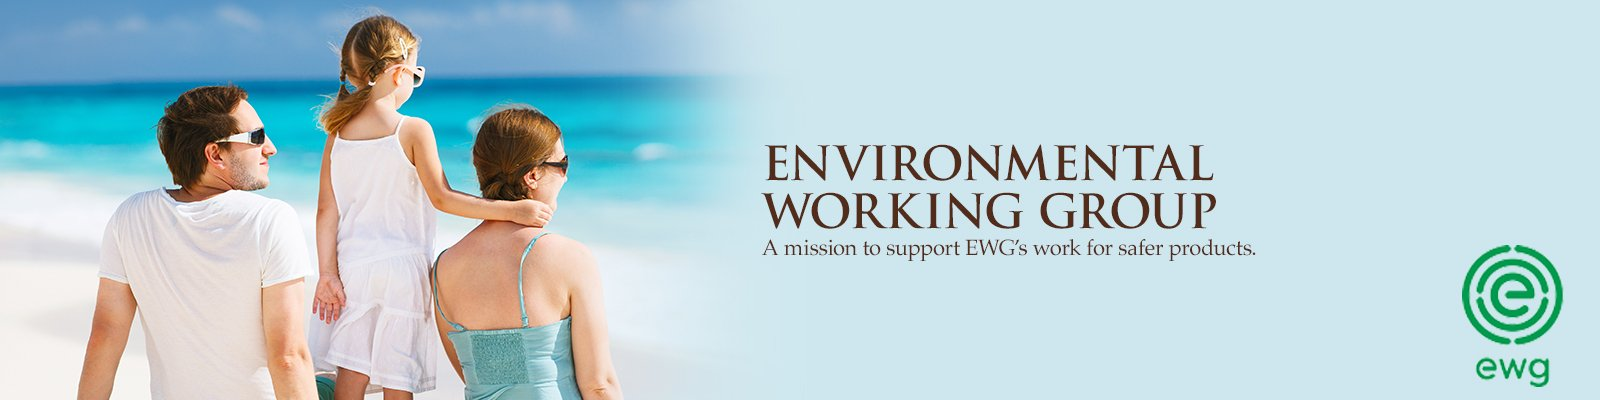 Environmental Working Group A mission to support EWG's work for safer products